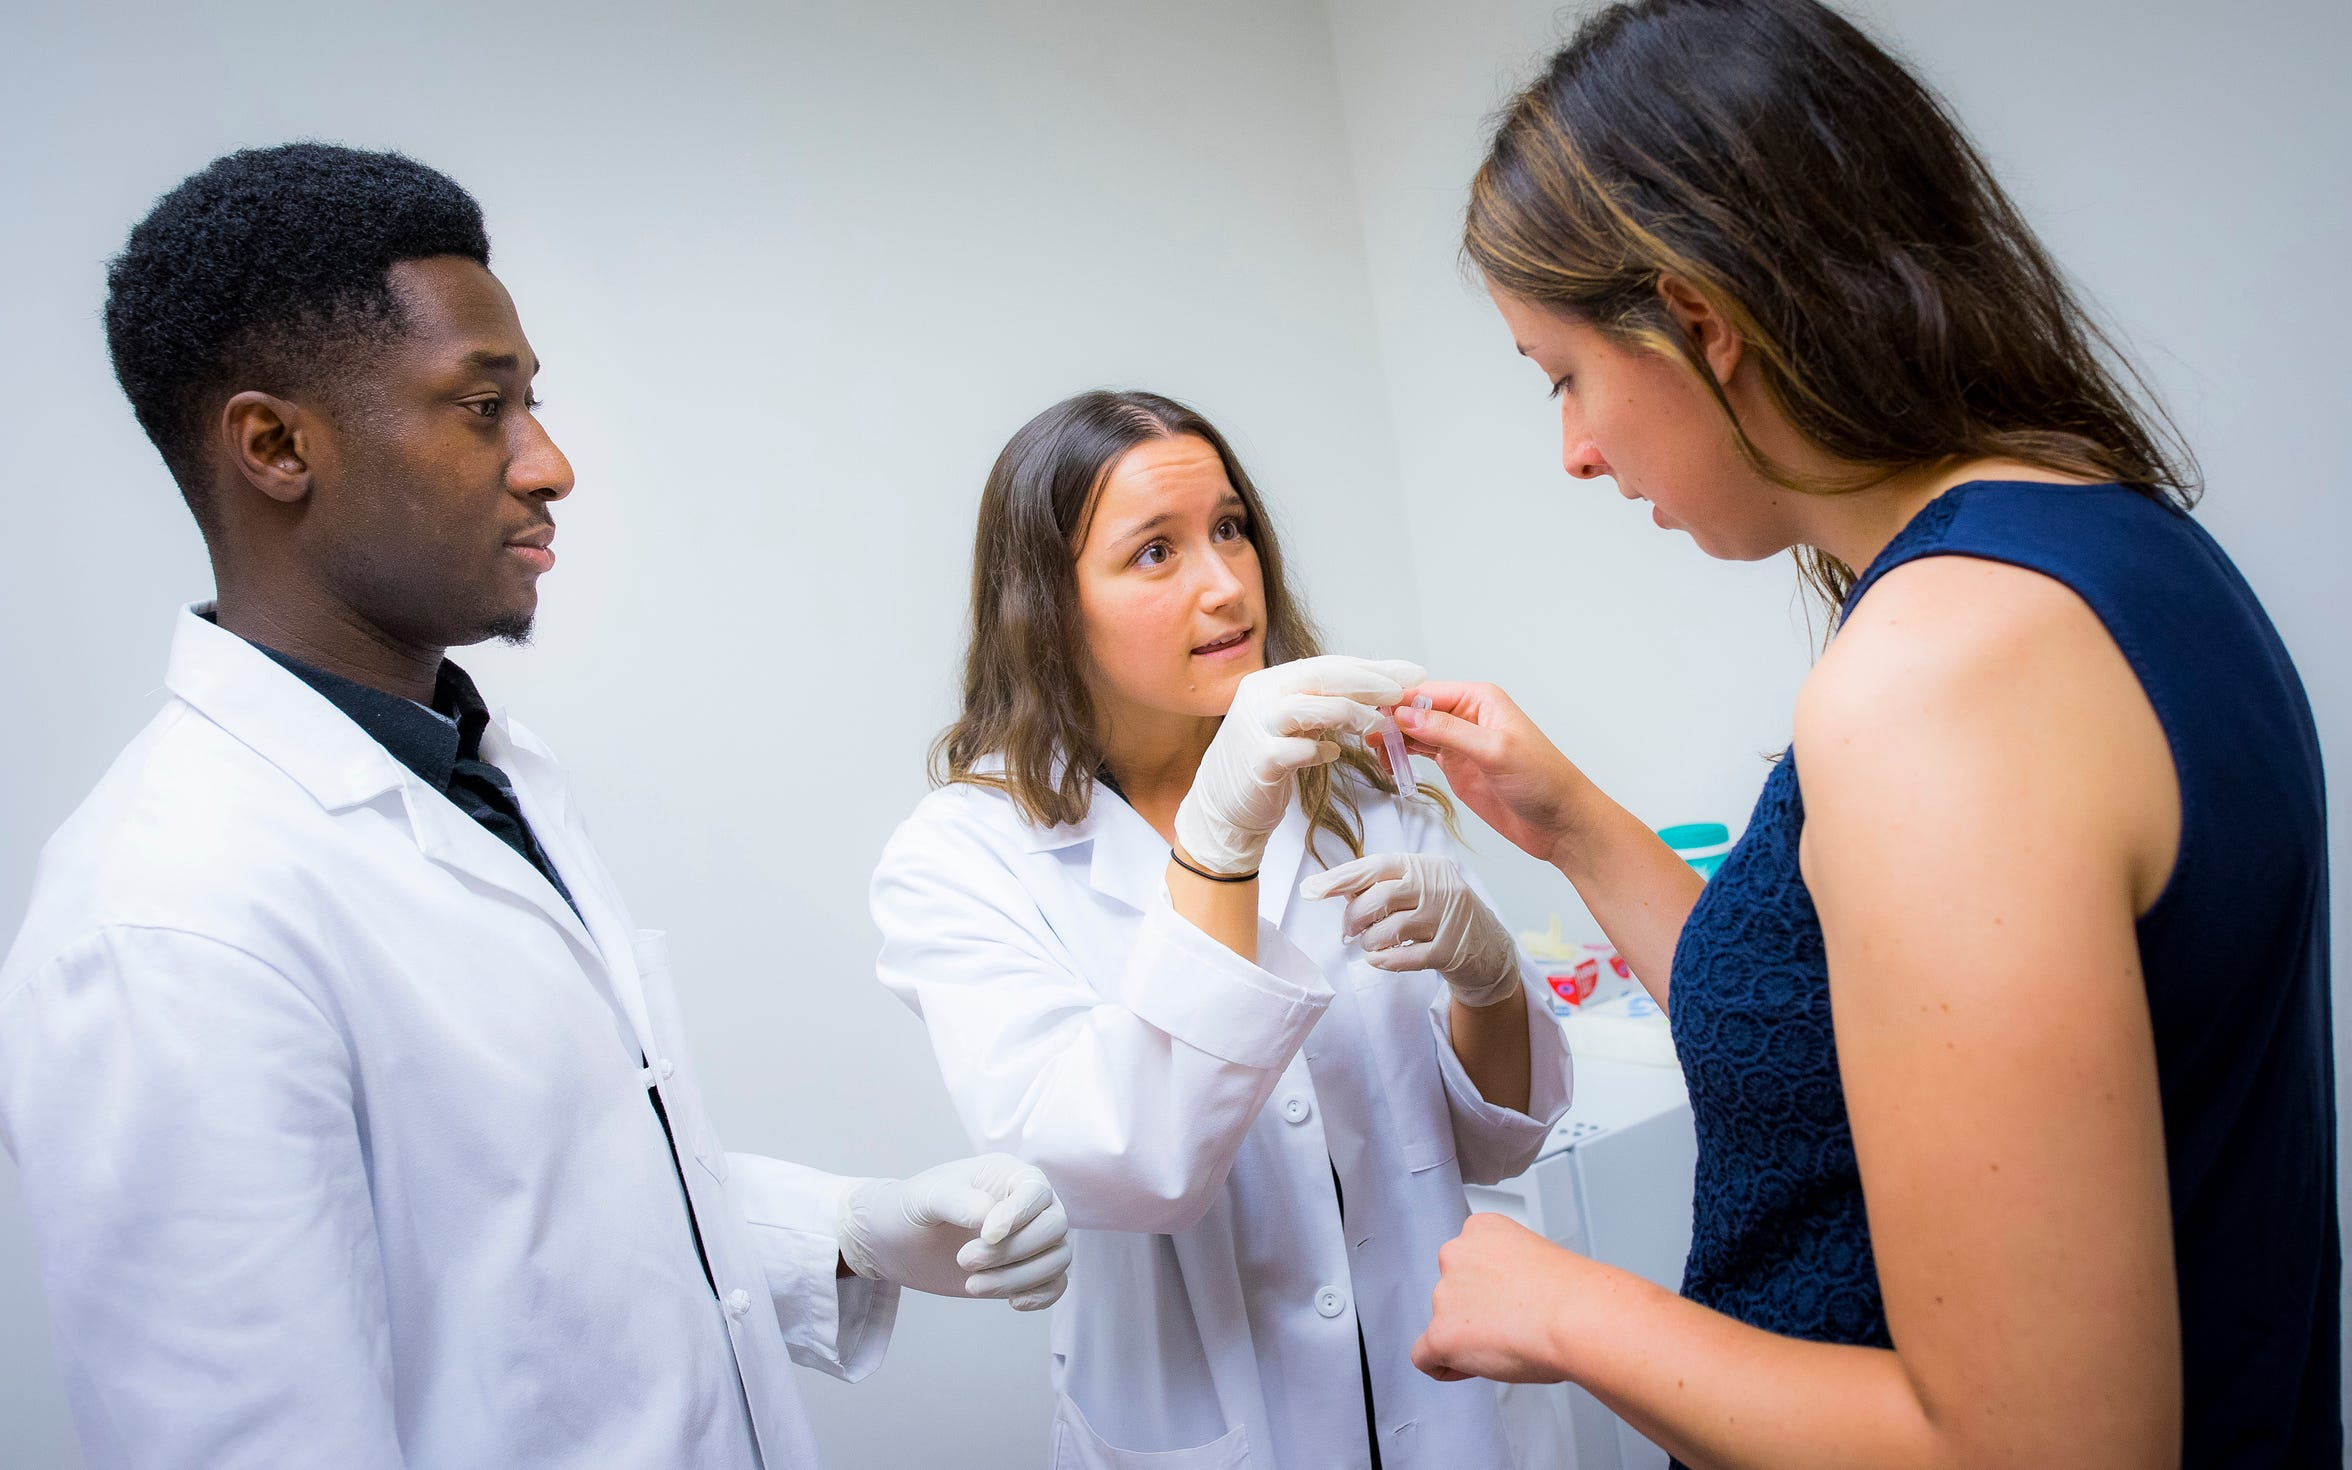 Rutgers School of Arts and Sciences students Adam Khanu, left, majoring in biological sciences, and Marissa McClement, majoring in psychology, demonstrate one of the smoking cessation tests they perform for the Department of Psychology.